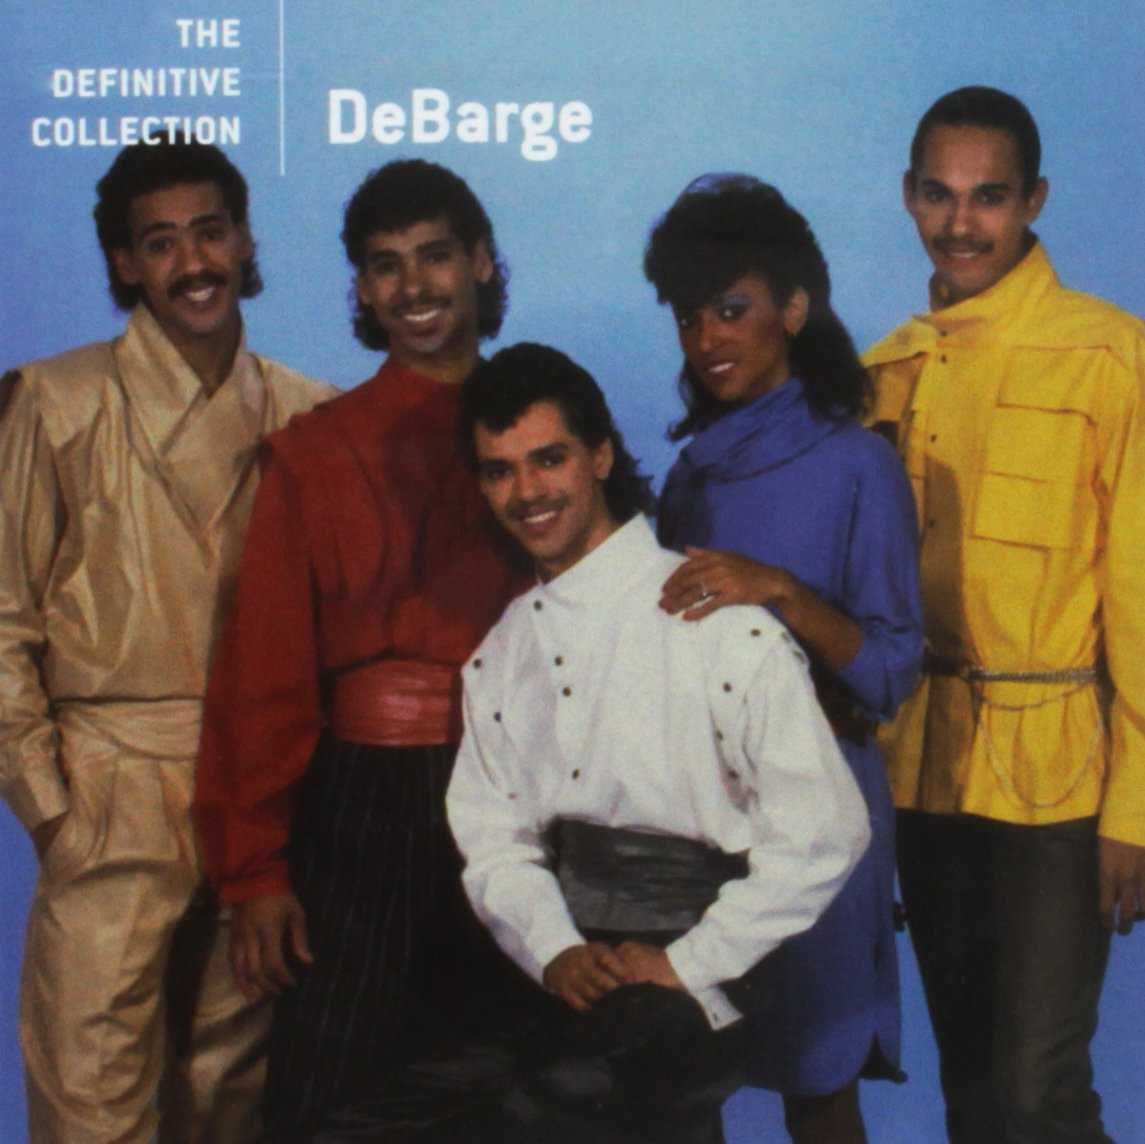 CD : DeBarge - The Definitive Collection (Remastered)